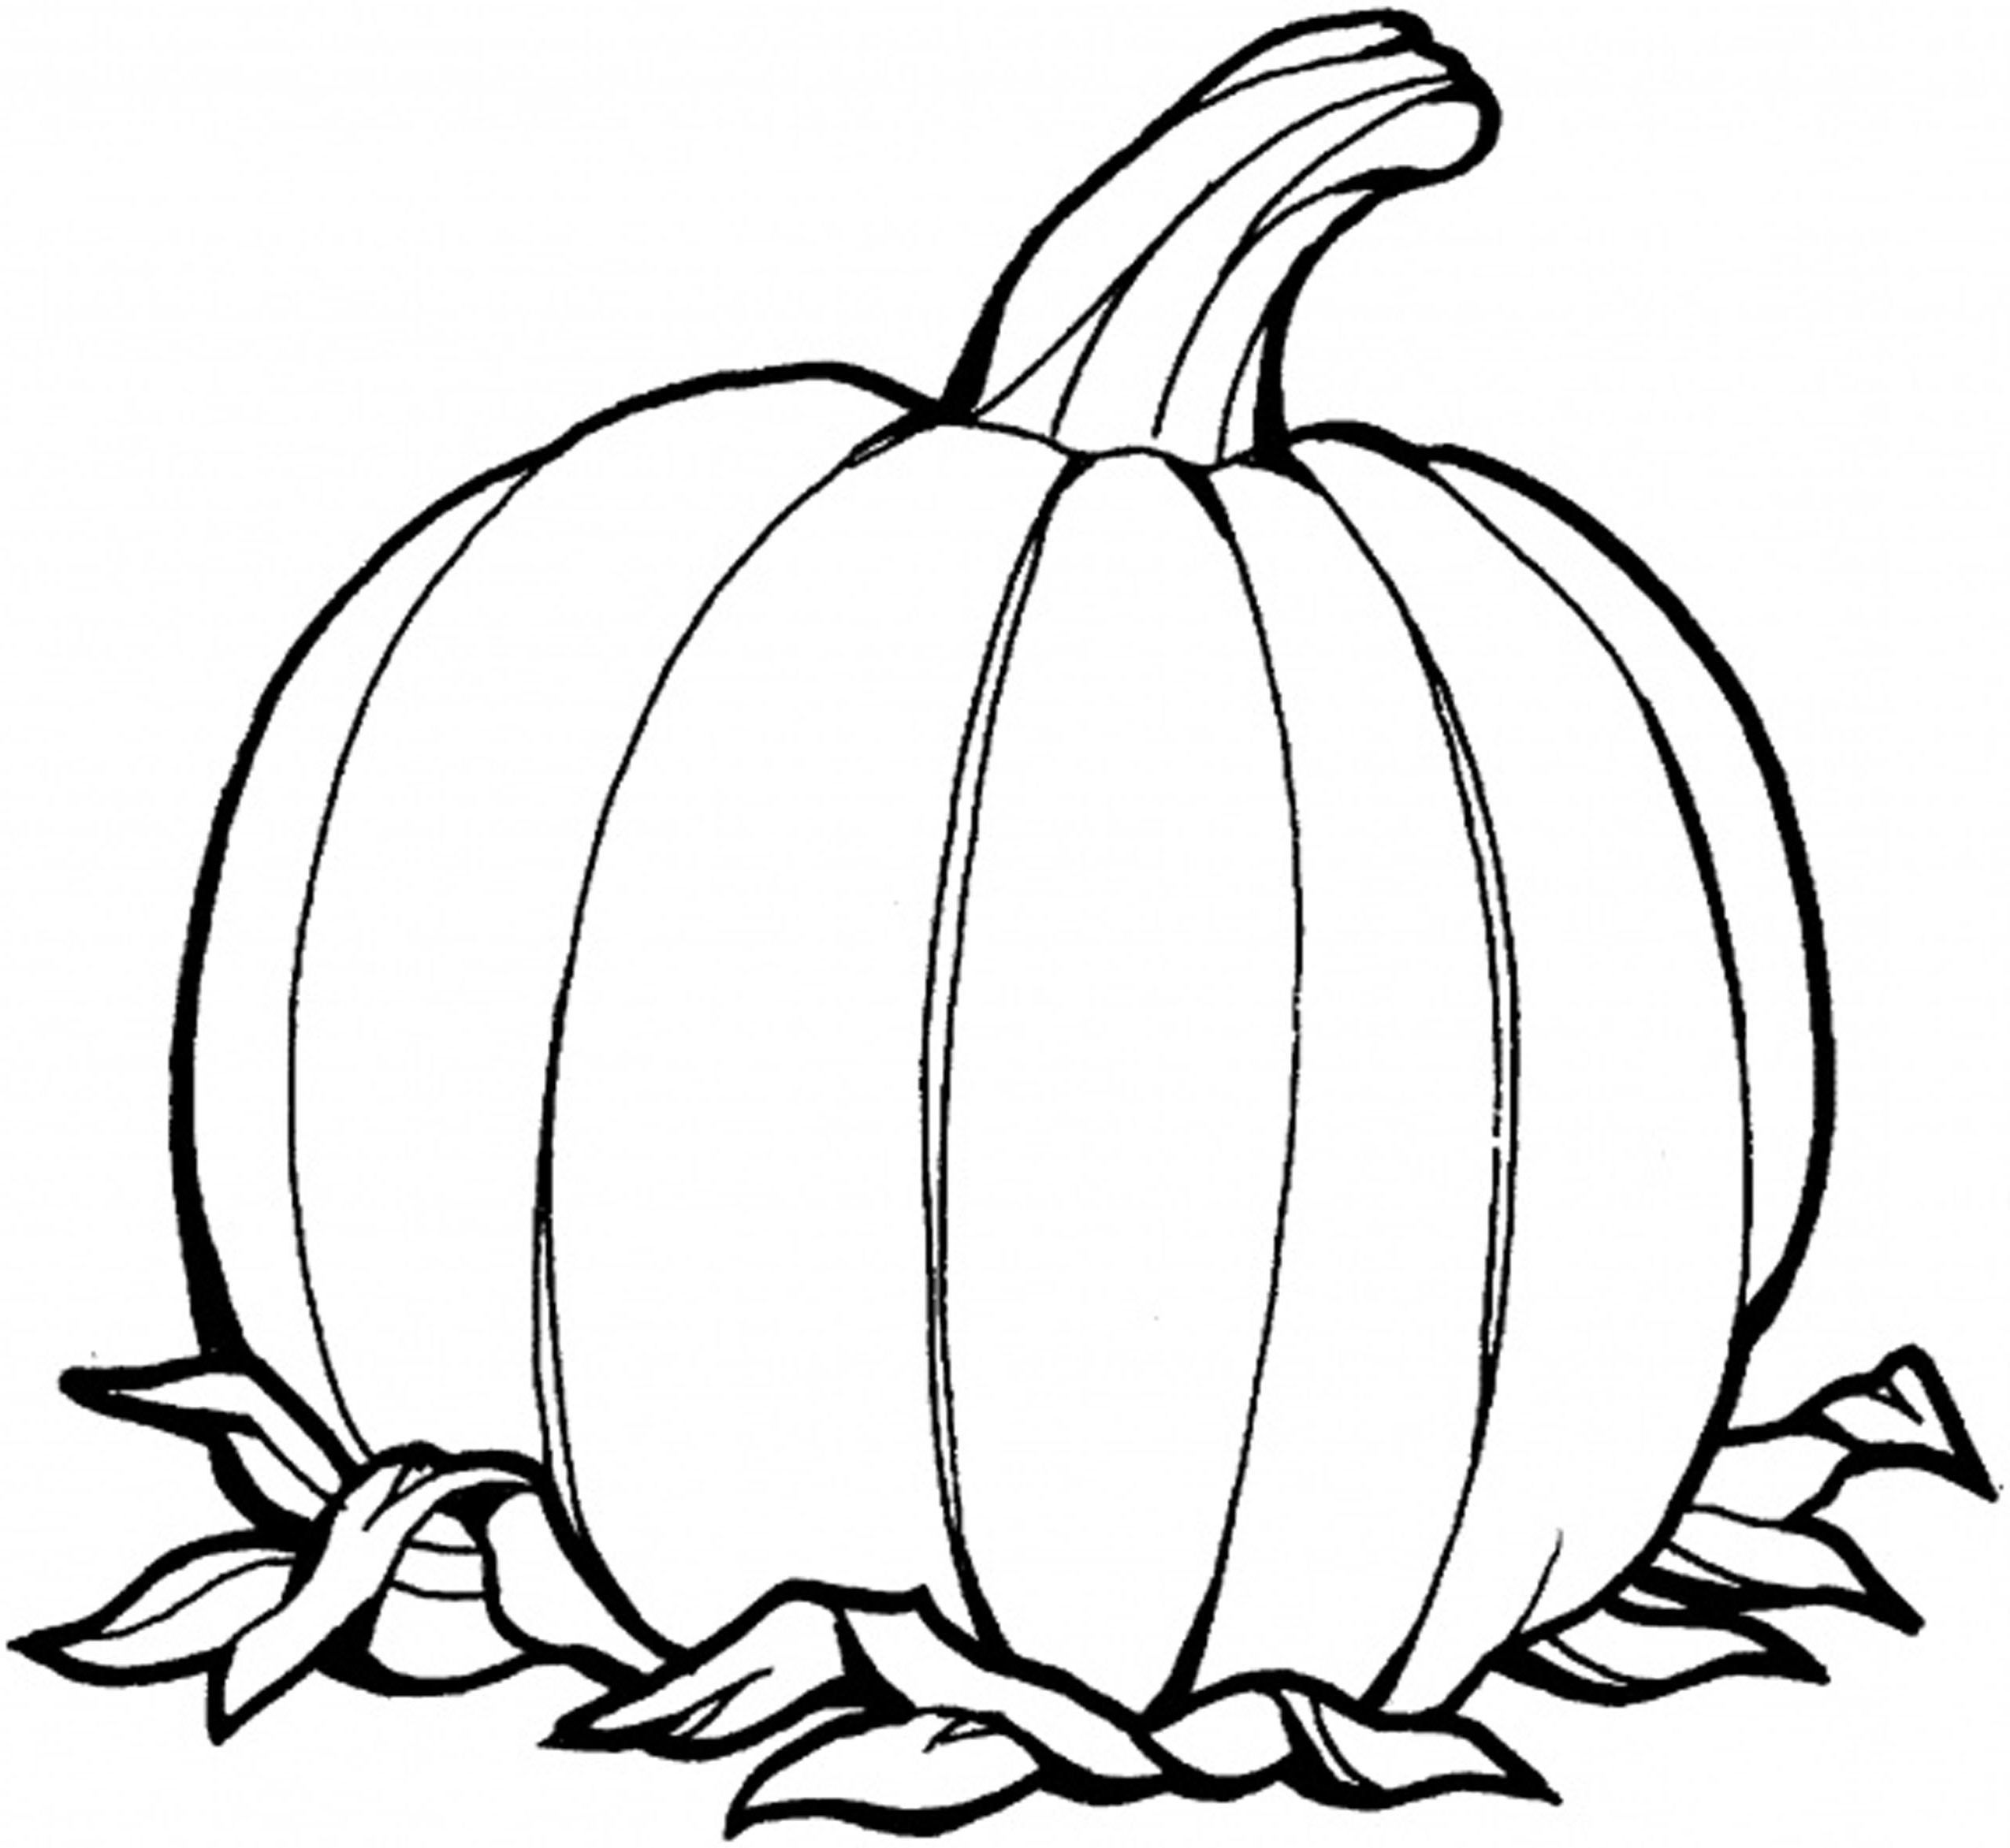 printable blank pumpkin coloring pages - photo#20